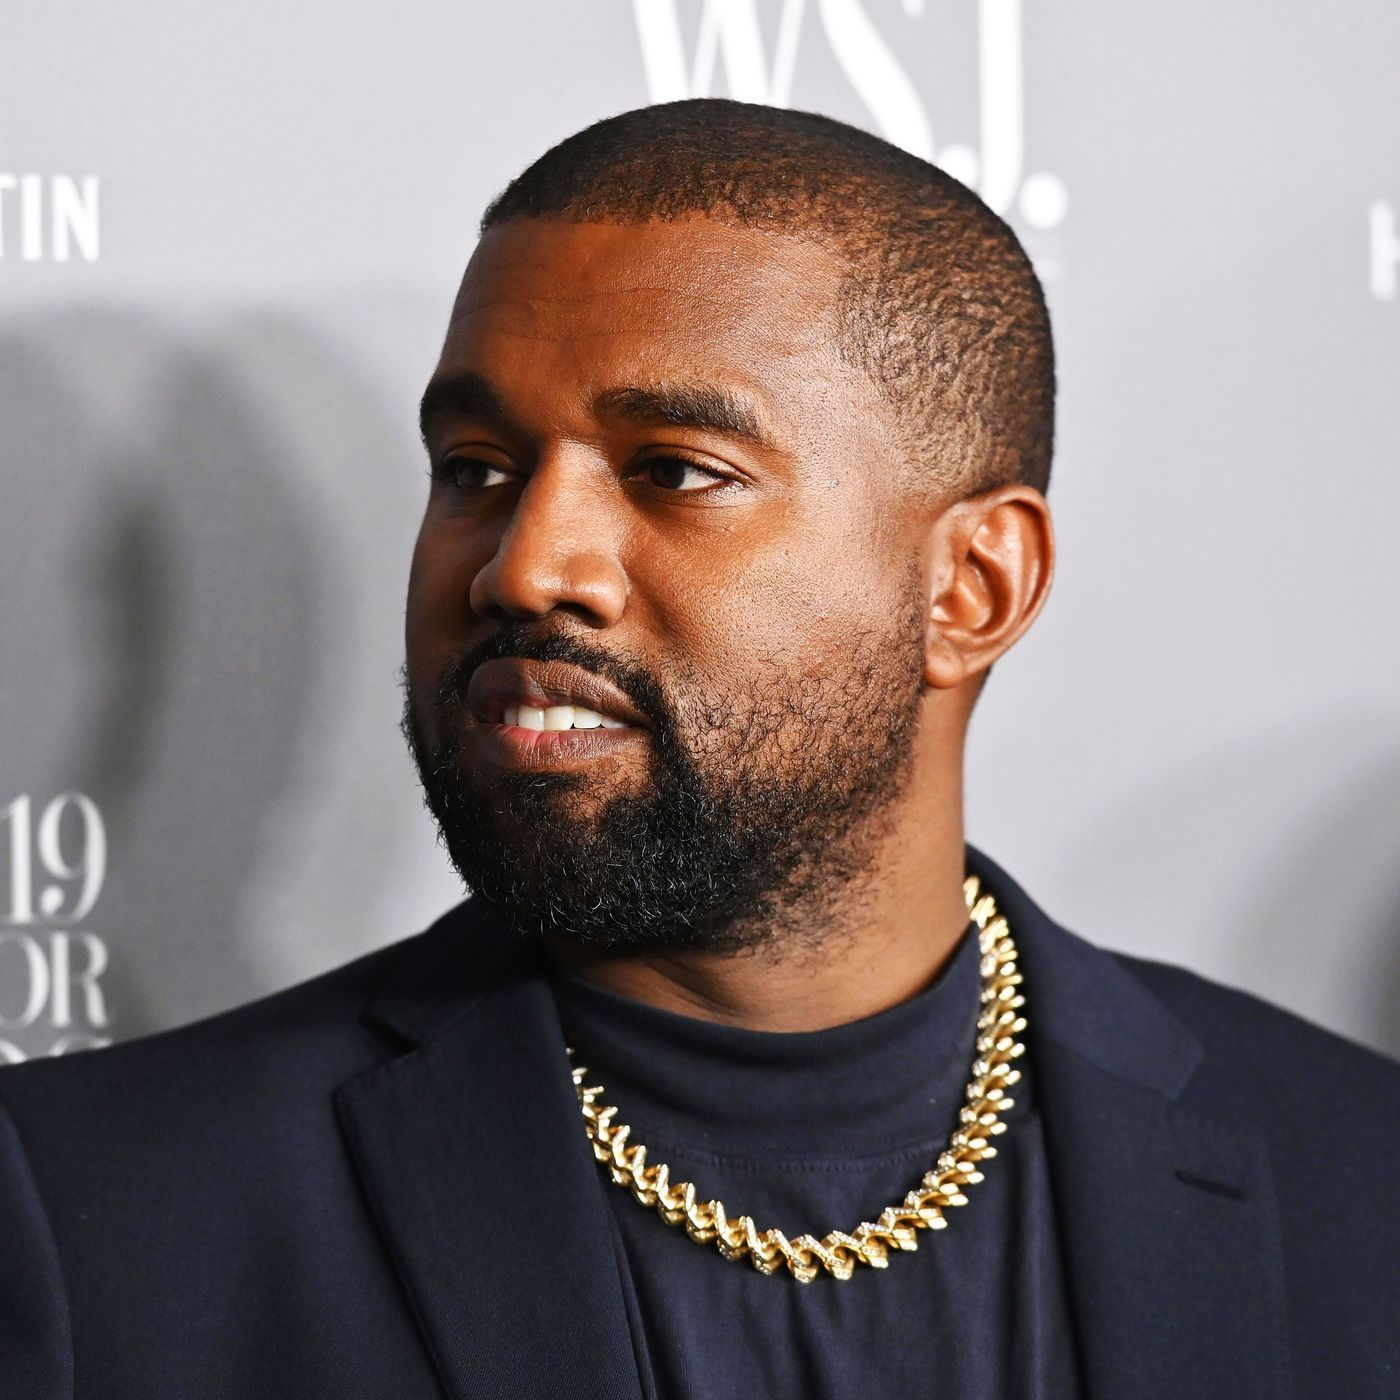 Kanye West And The Media Are Once Again Playing A Dangerous Game In 2020 Kanye West Kanye West Bear Kanye